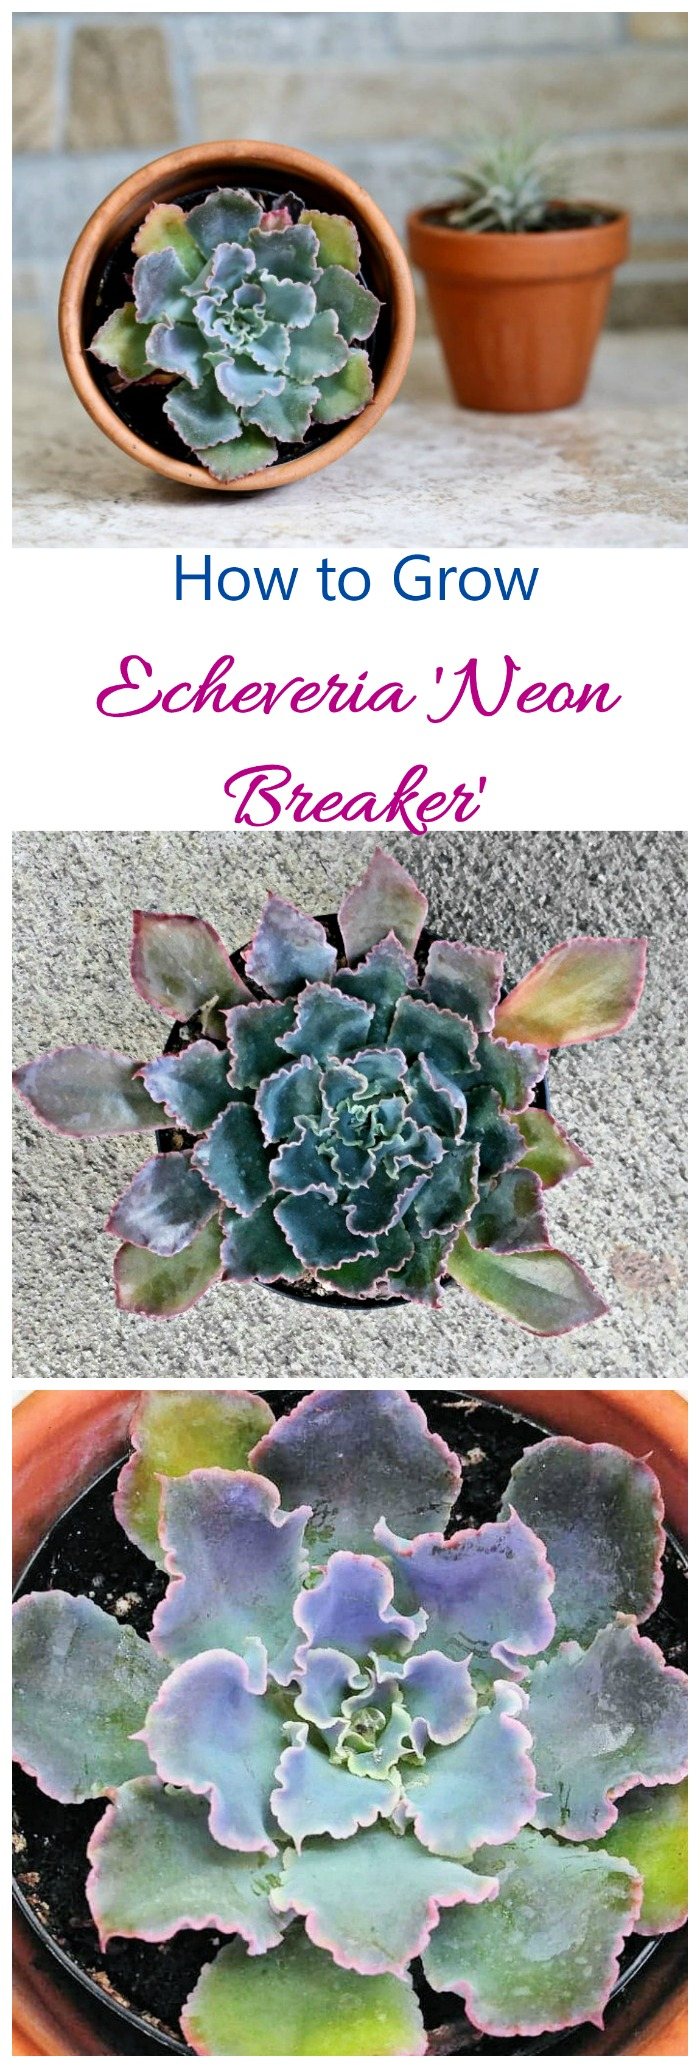 Echeveria Neon Breakers has blue green leaves with deep pin margins and curled edges. It is drought resistant and easy to grow if you follow a few tips.